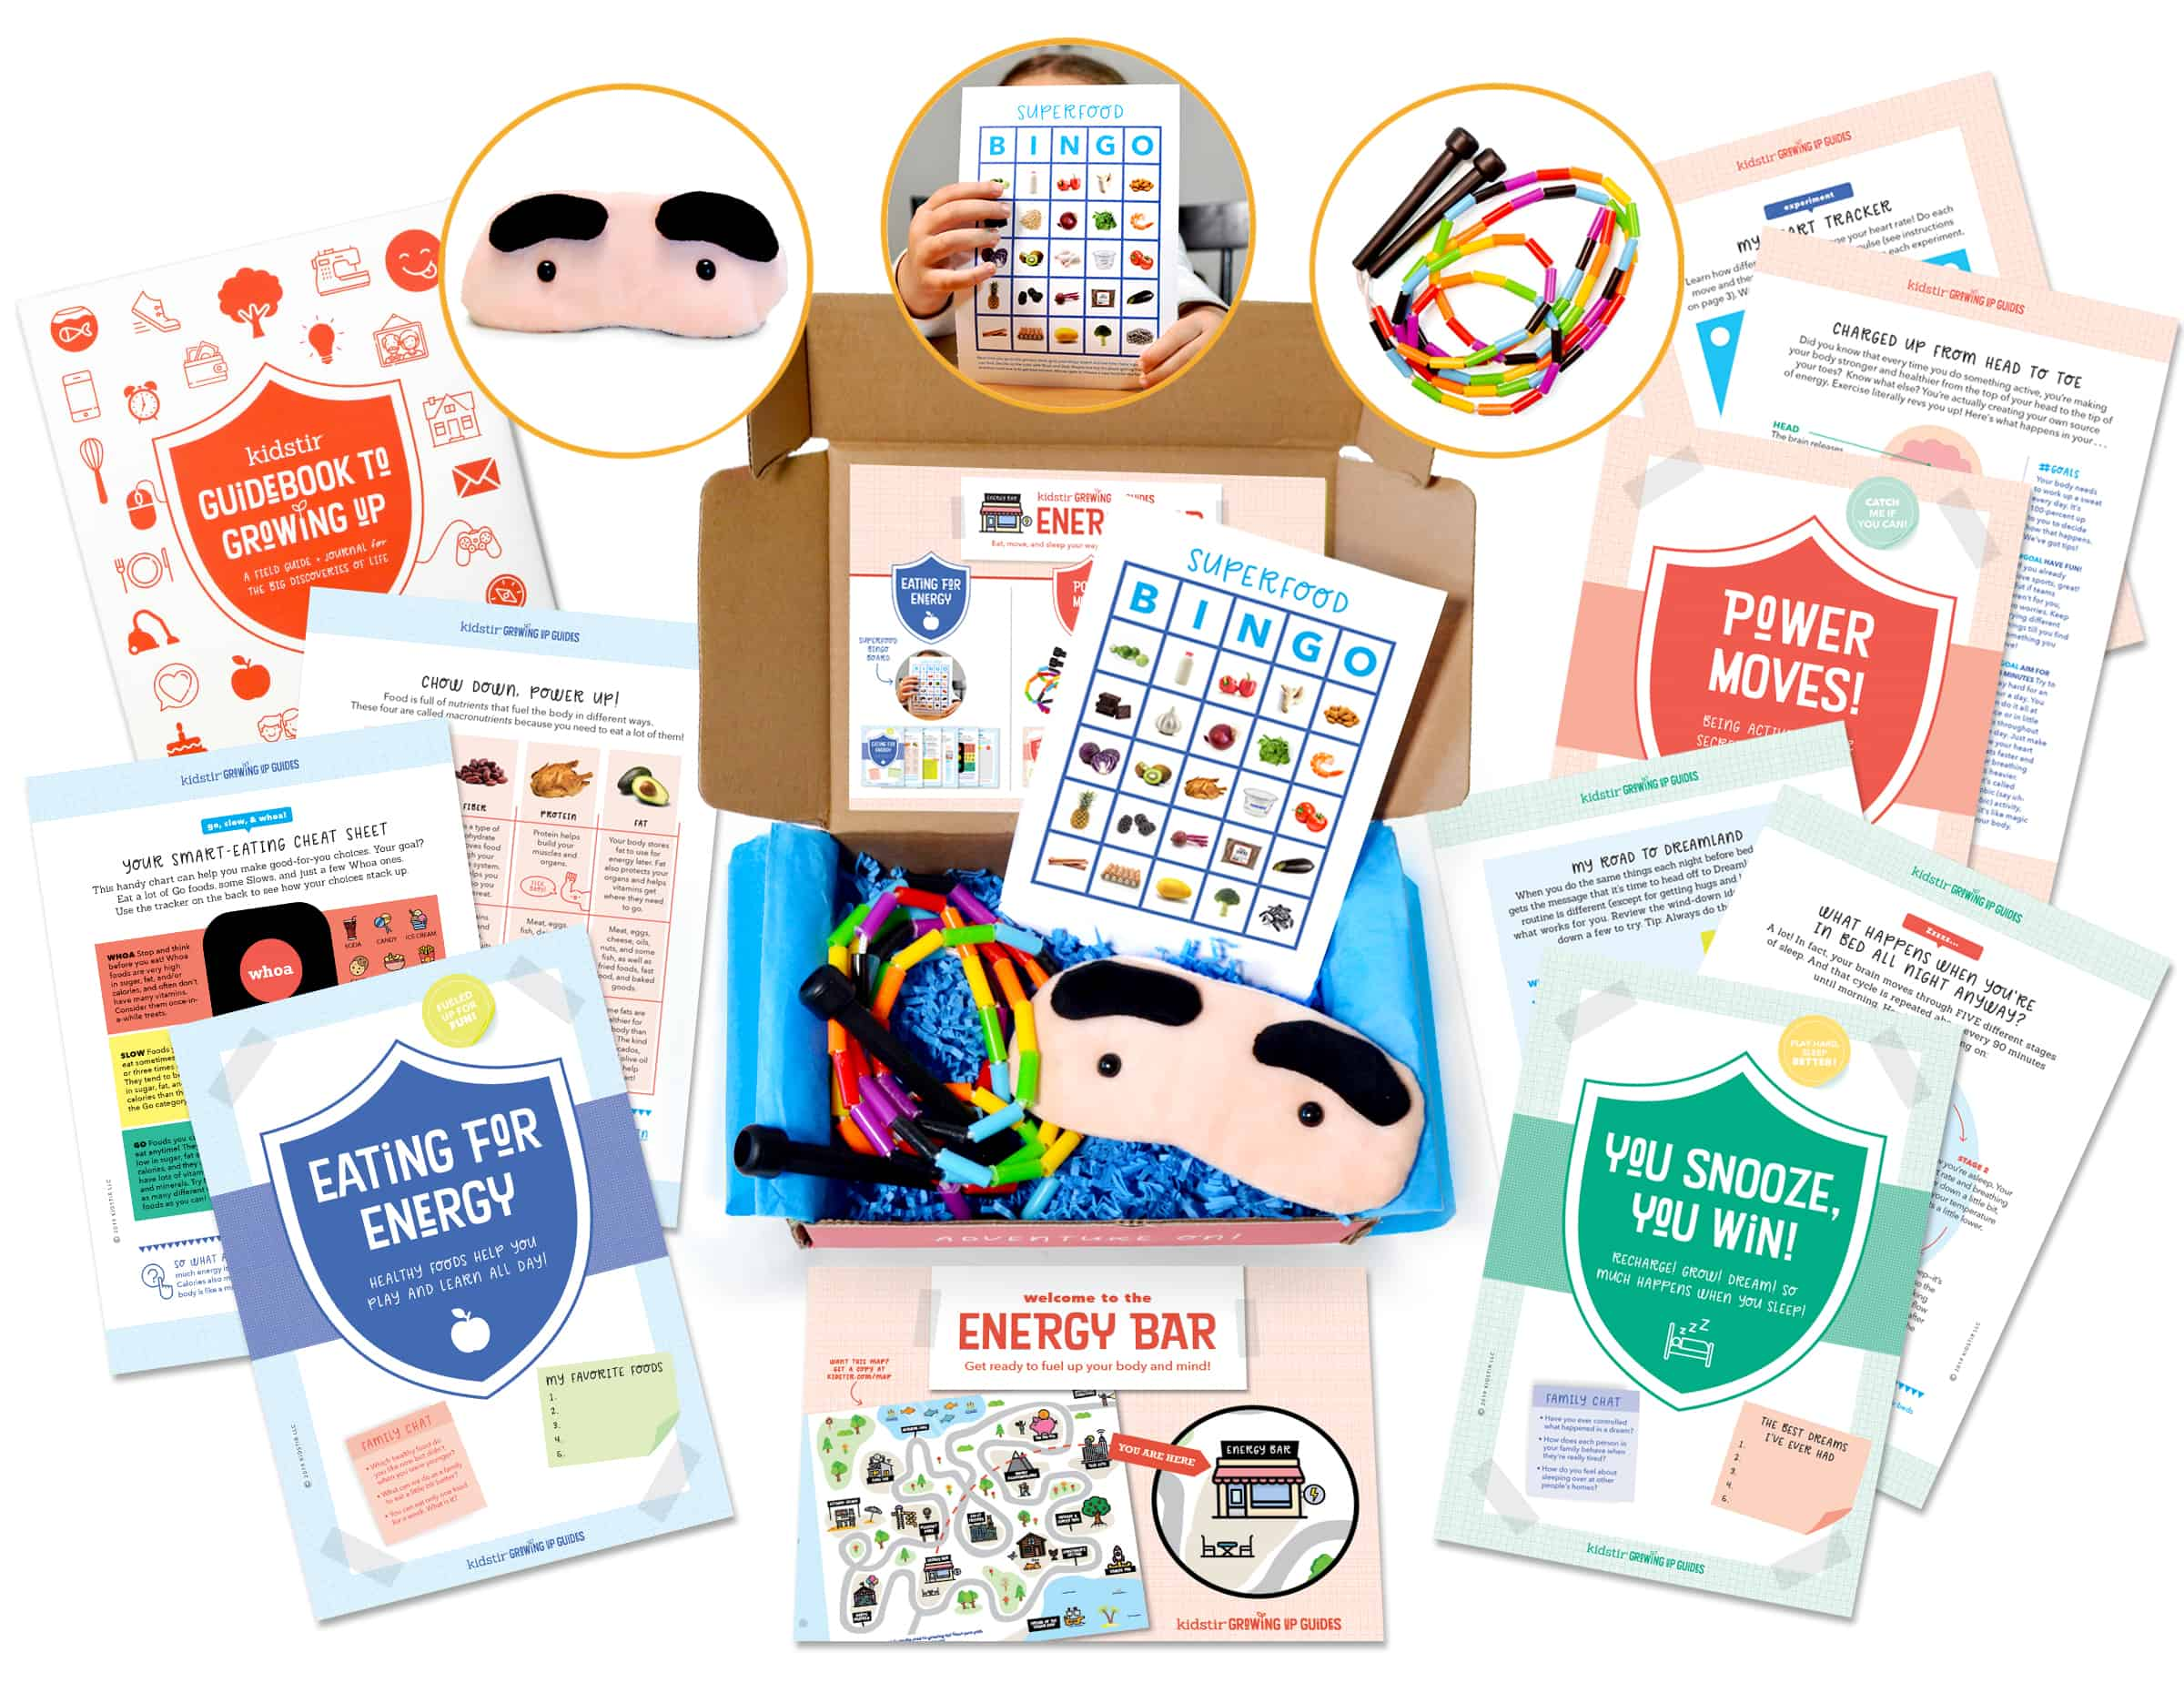 Kidstir Growing Up Guides Coupon: 50% Off First Month! LAST DAY for Christmas Delivery!